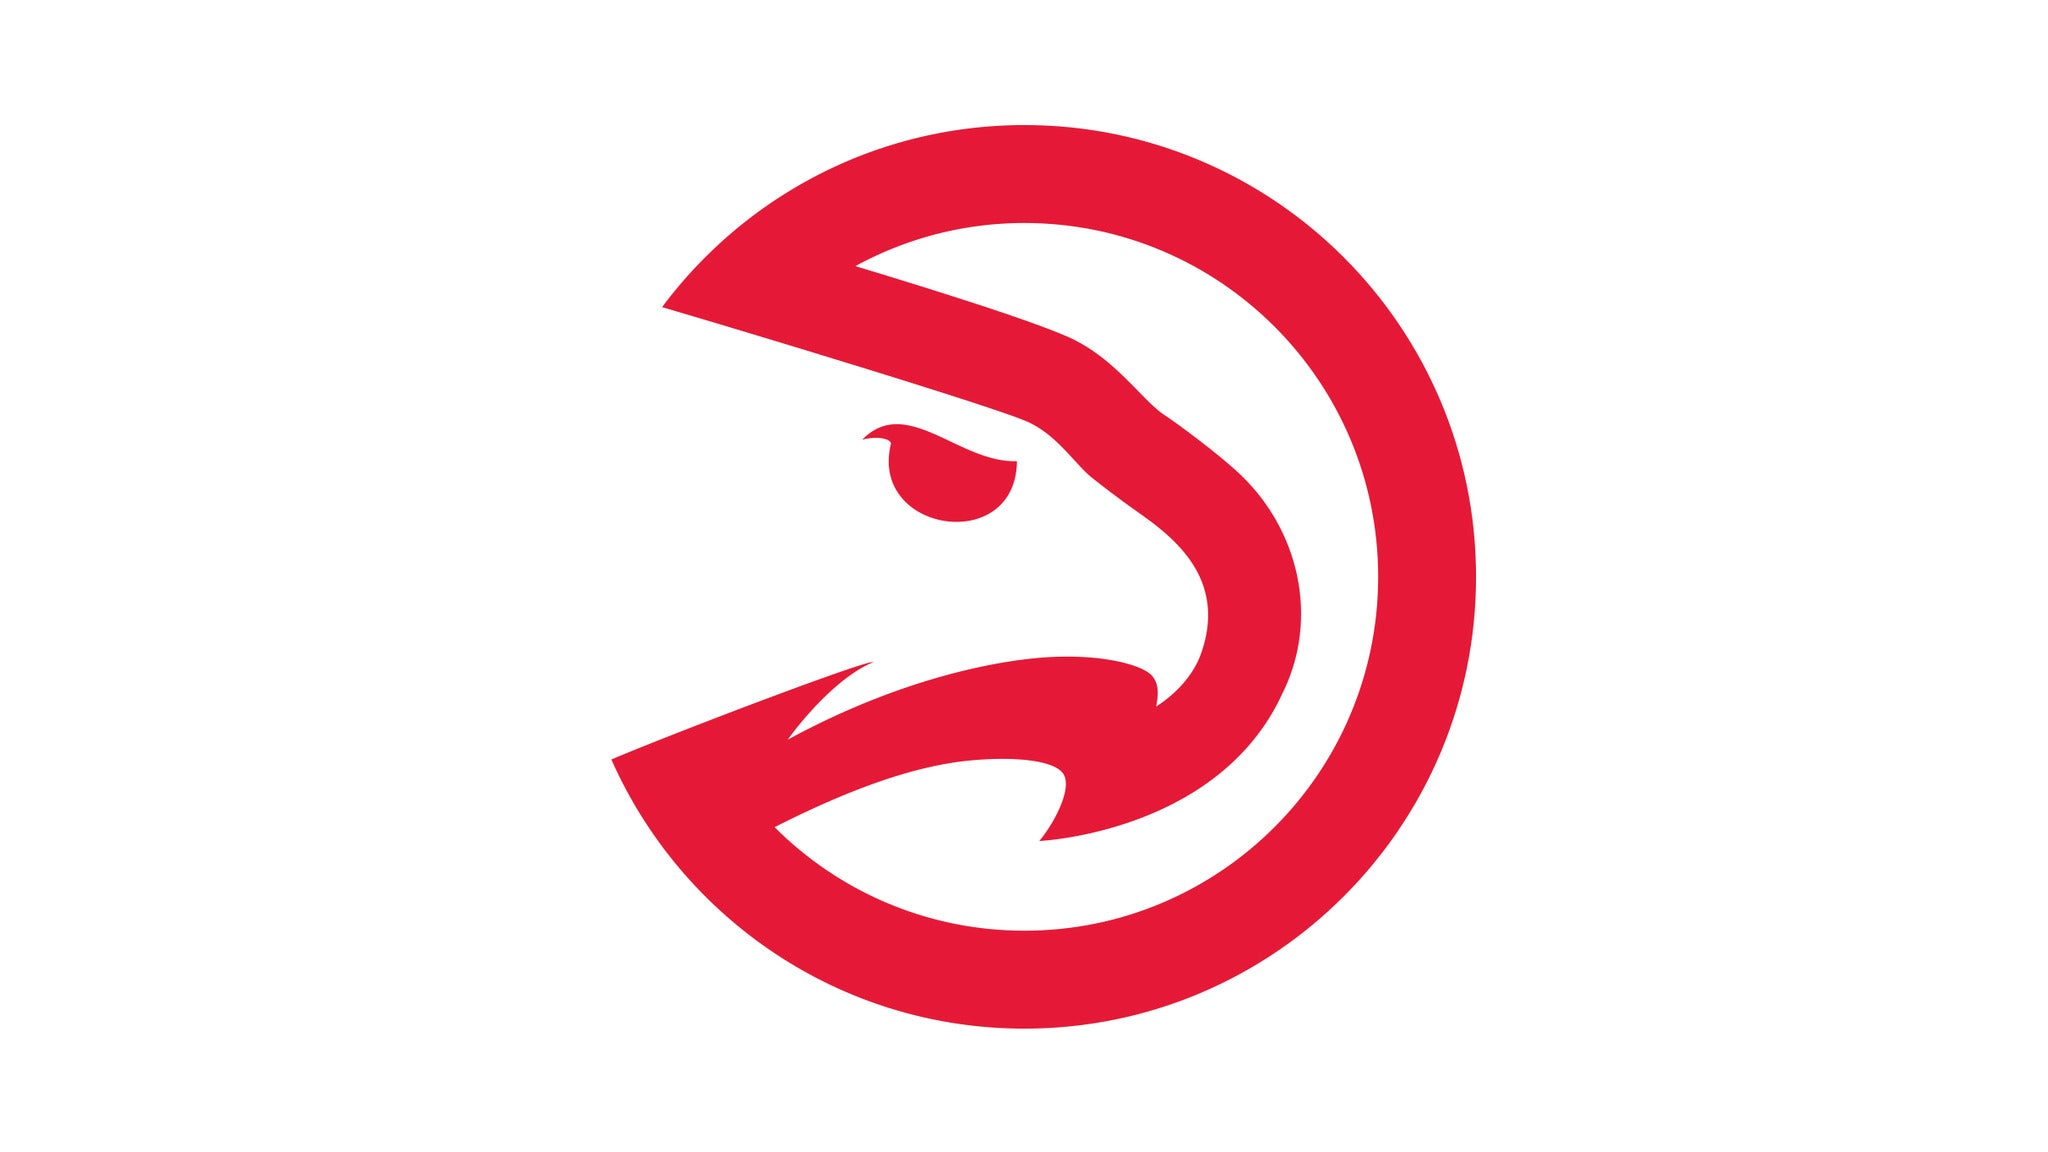 Atlanta Hawks vs. Detroit Pistons at Philips Arena